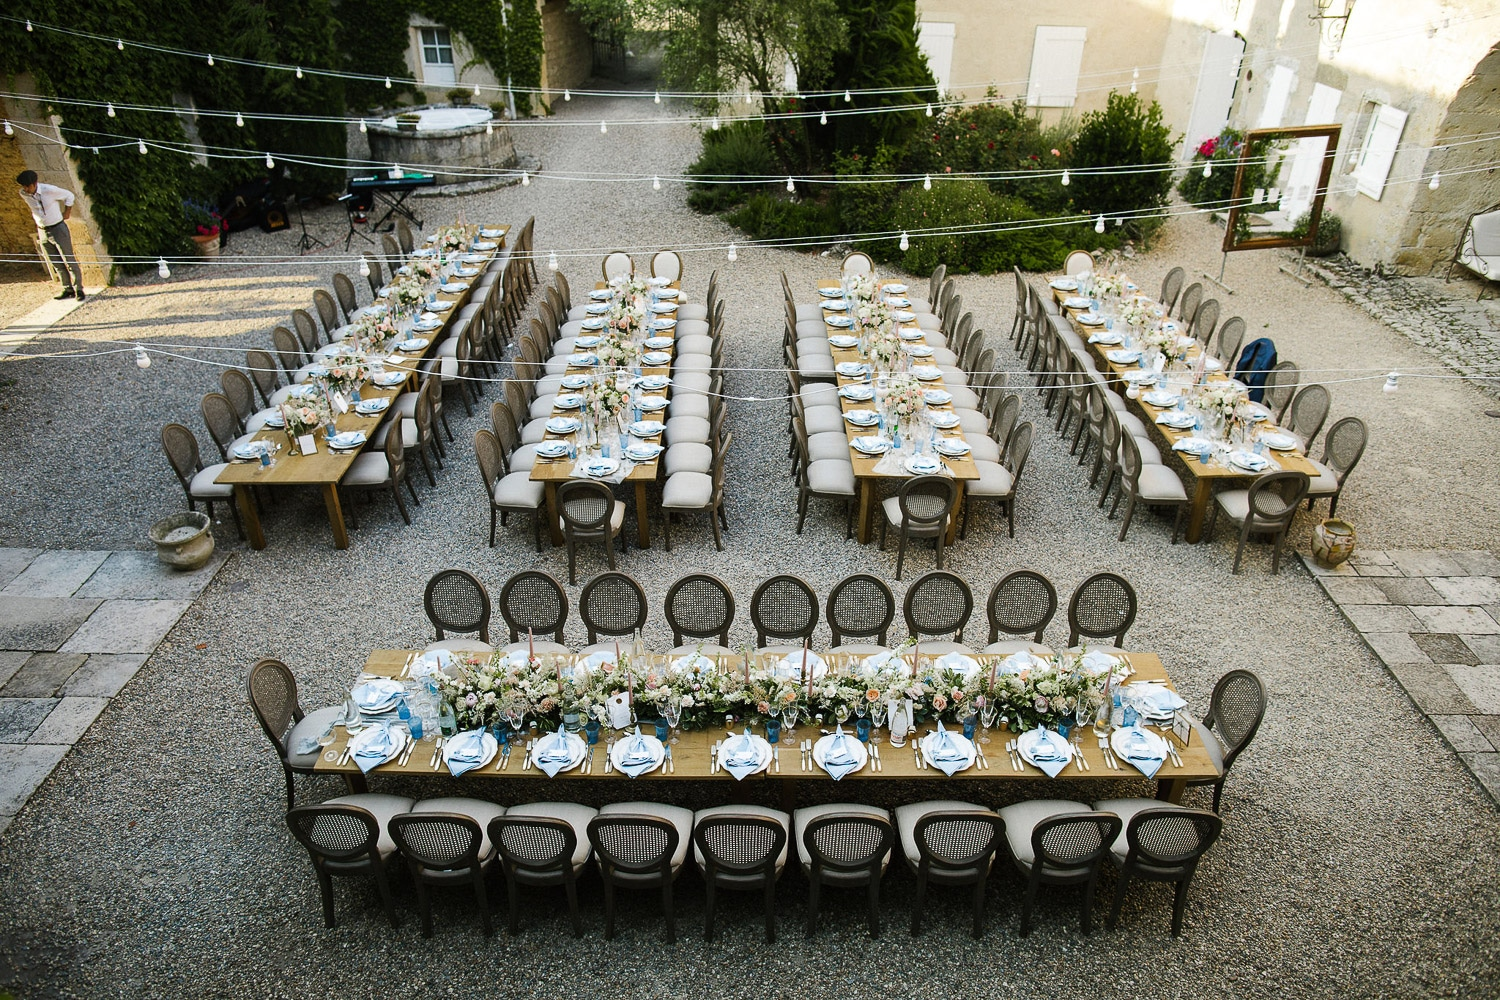 al fresco wedding dinner in the courtyard